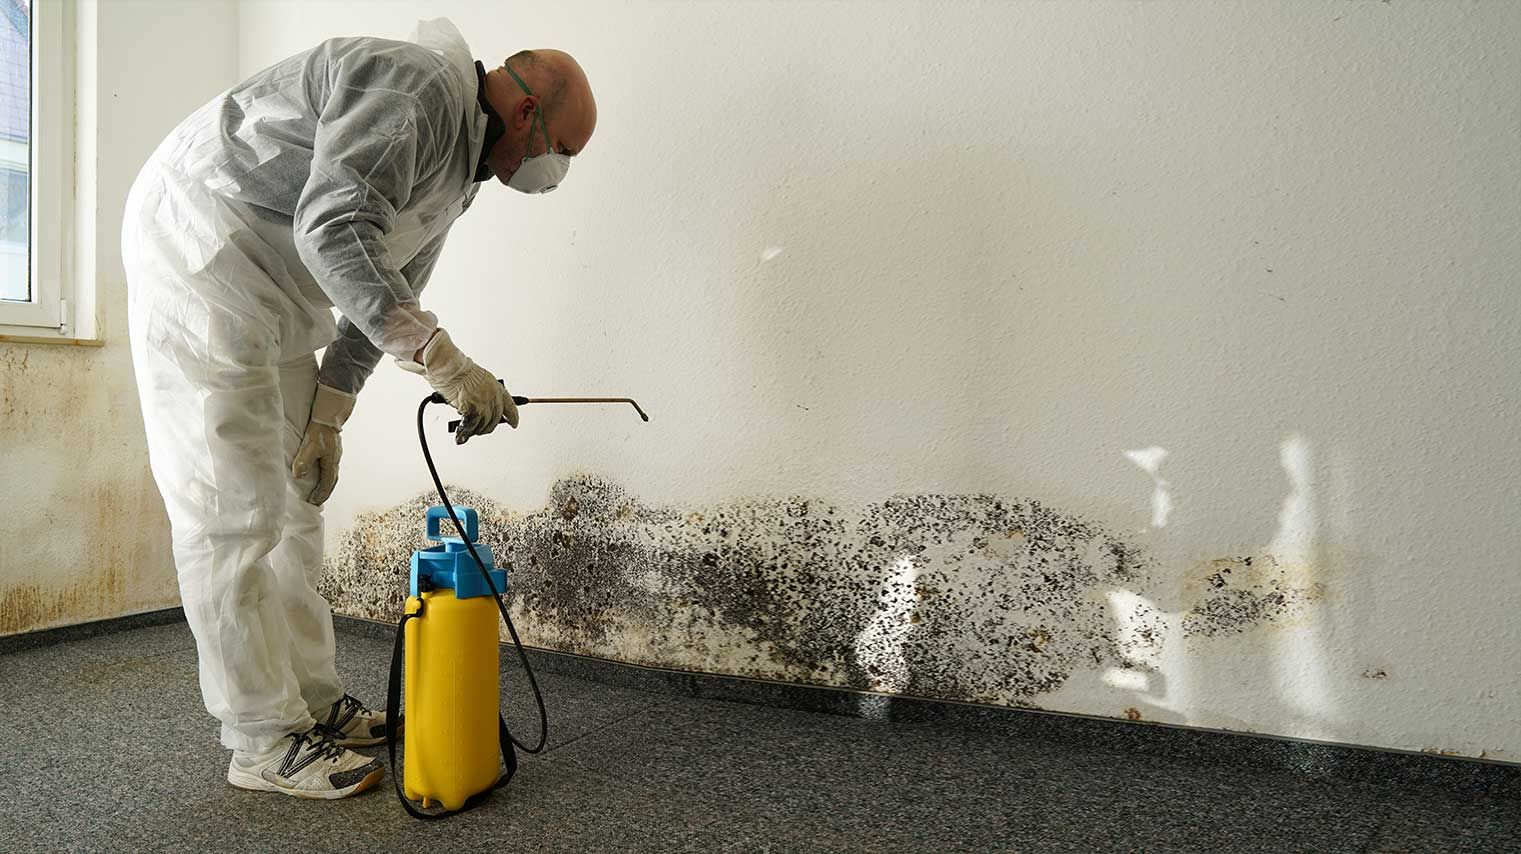 The vent cleaning service in Cape Cod offered by SERVPRO